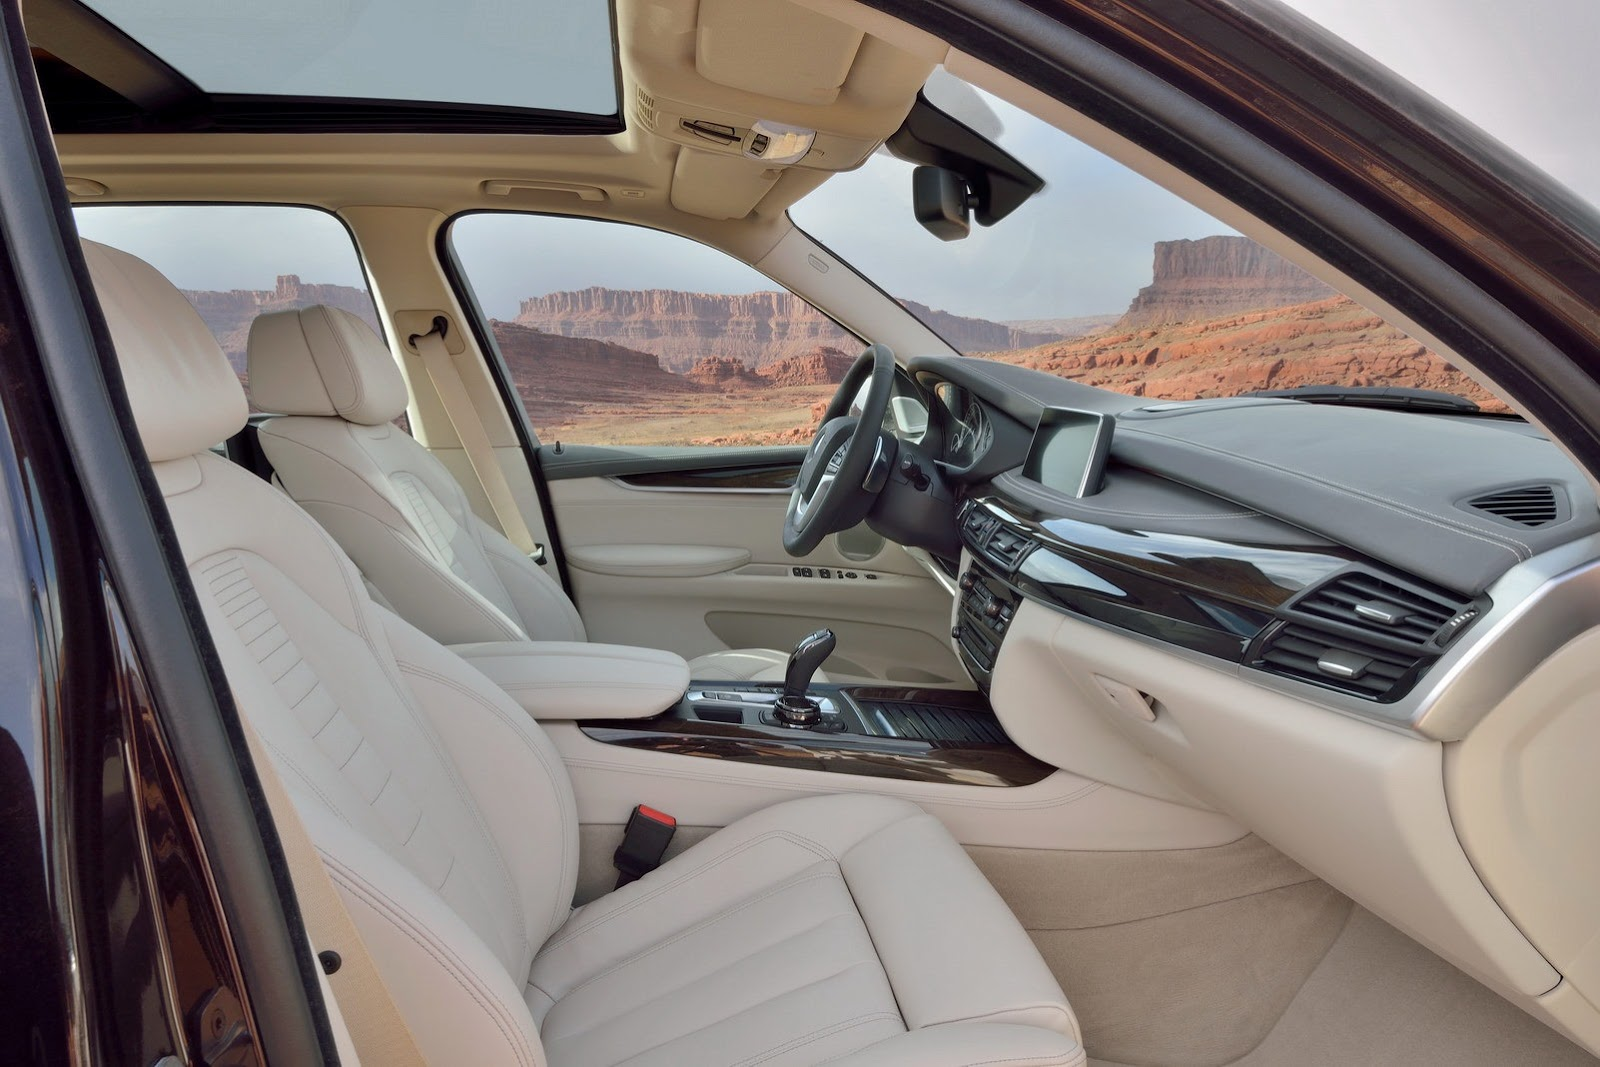 2014 BMW X5 2 2014 BMW X5 Features and details